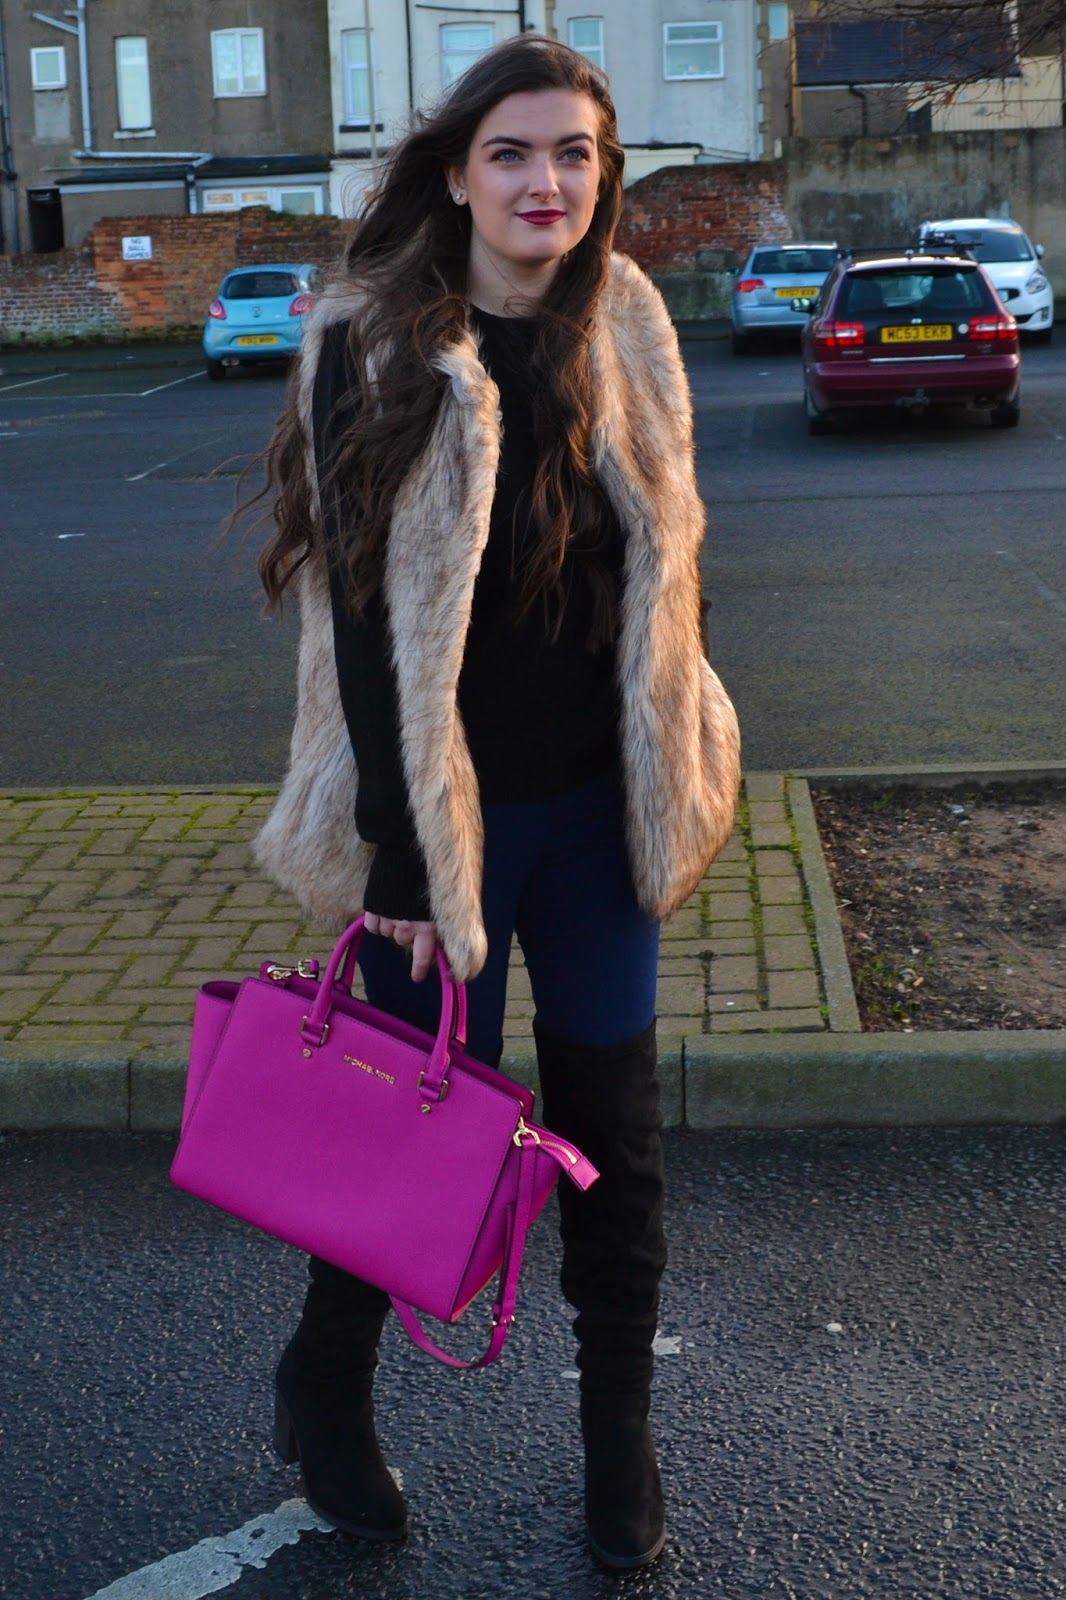 Knitwear & Over The Knee Boots - Rachel Nicole UK Blogger